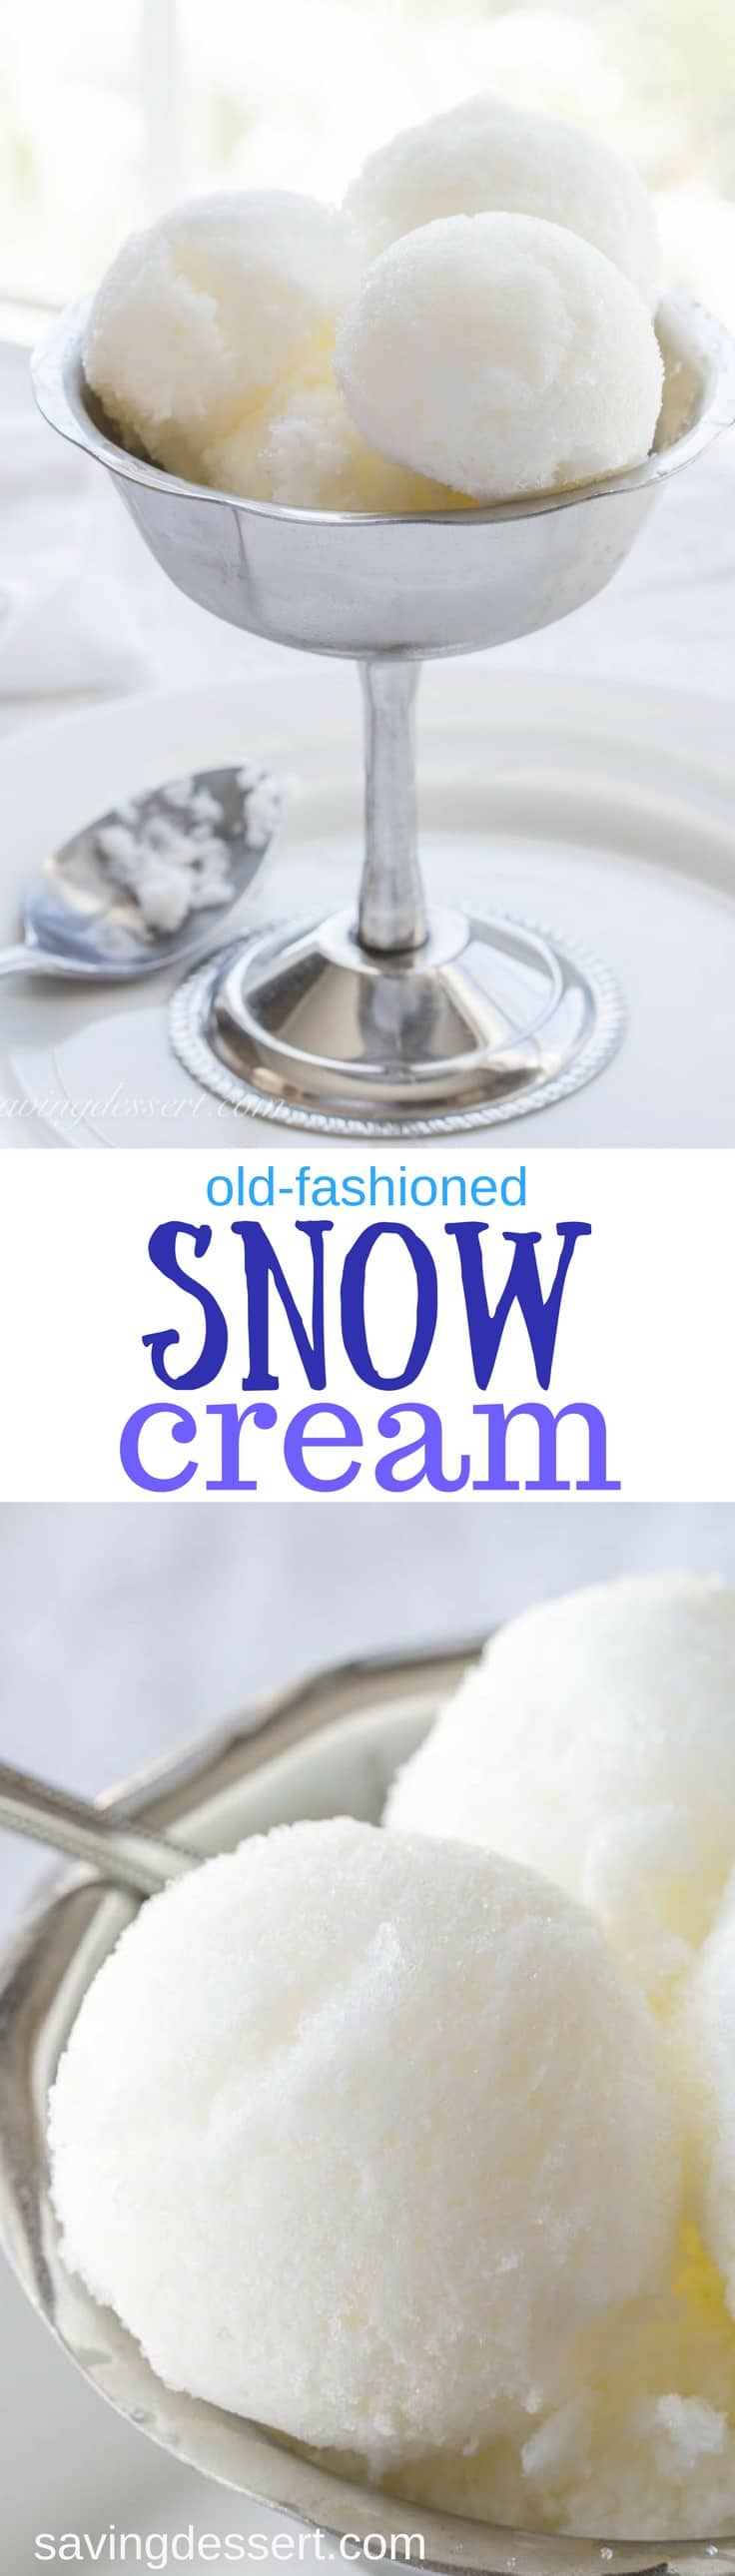 Homemade Old-Fashioned Snow Cream - A treat from days gone by, snow cream is a wonderful, easy frozen classic that falls out of the sky! www.savingdessert.com #savingroomfordessert #snowcream #snow #icecream #frozentreat